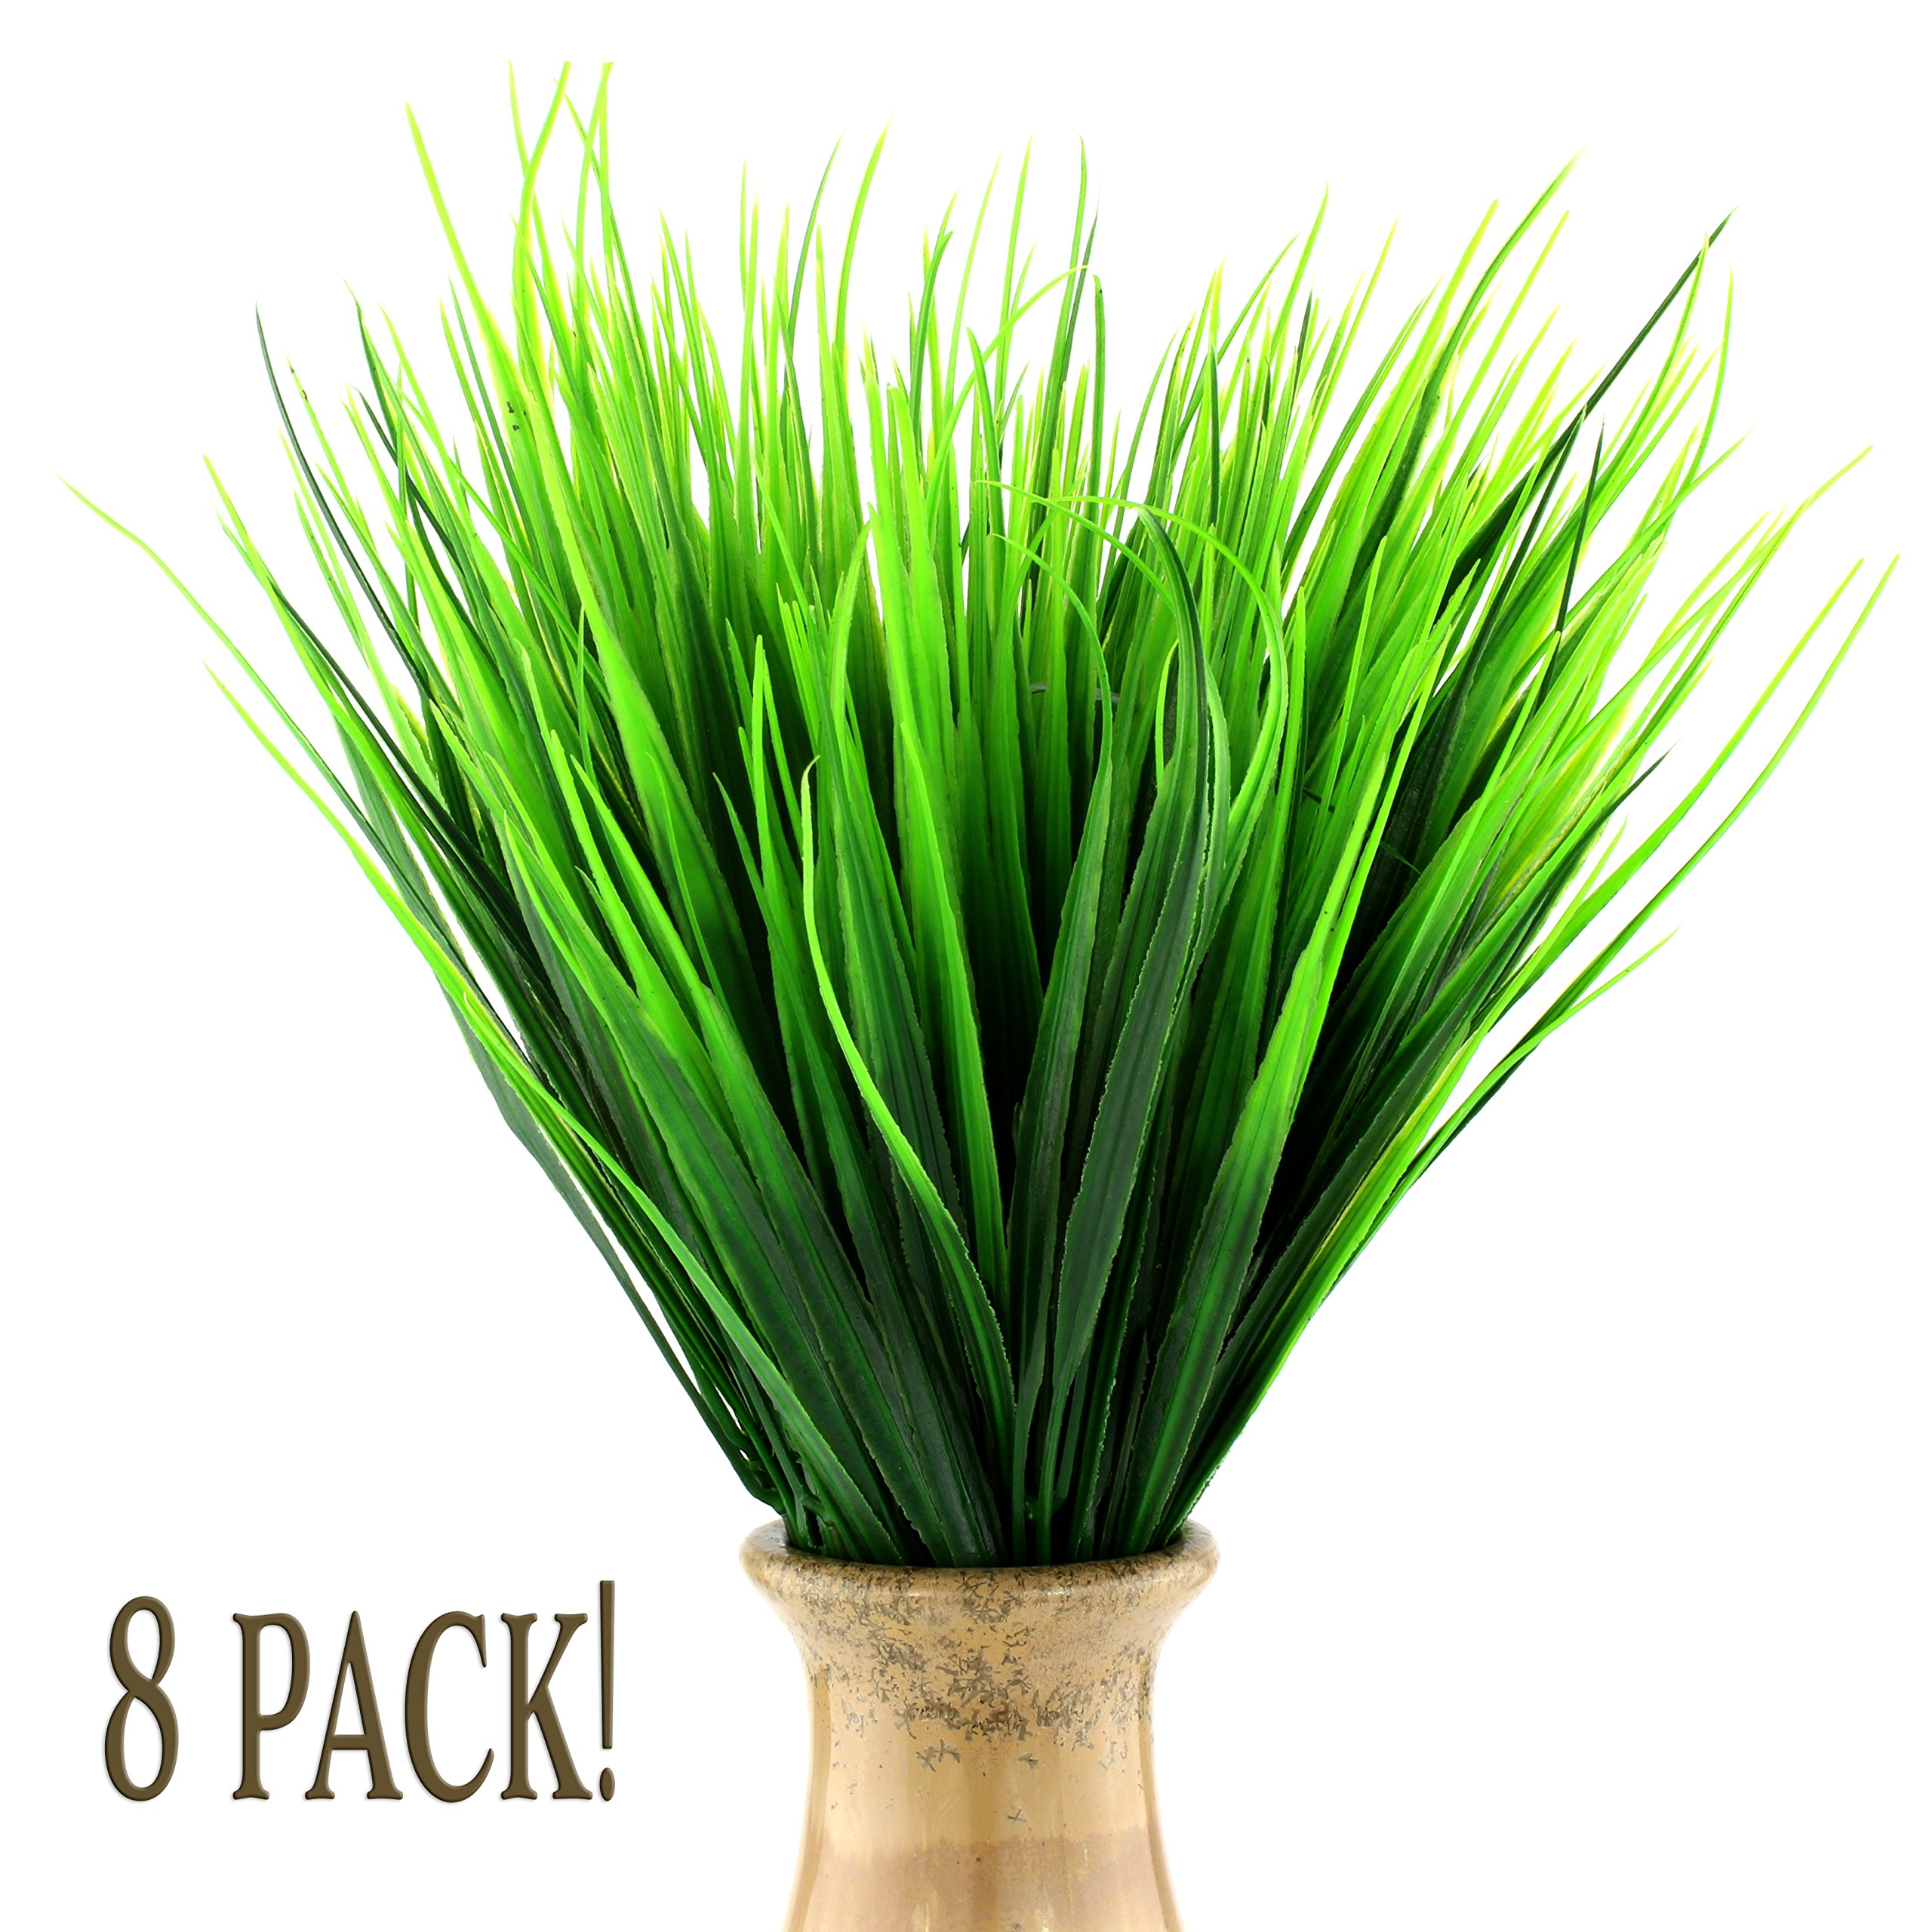 Faux Plastic Wheat Grass (8 Bunches); Artificial Wheatgrass Stalks Fake Decorating Shrubs for Indoor/Outdoor Imitation Plants